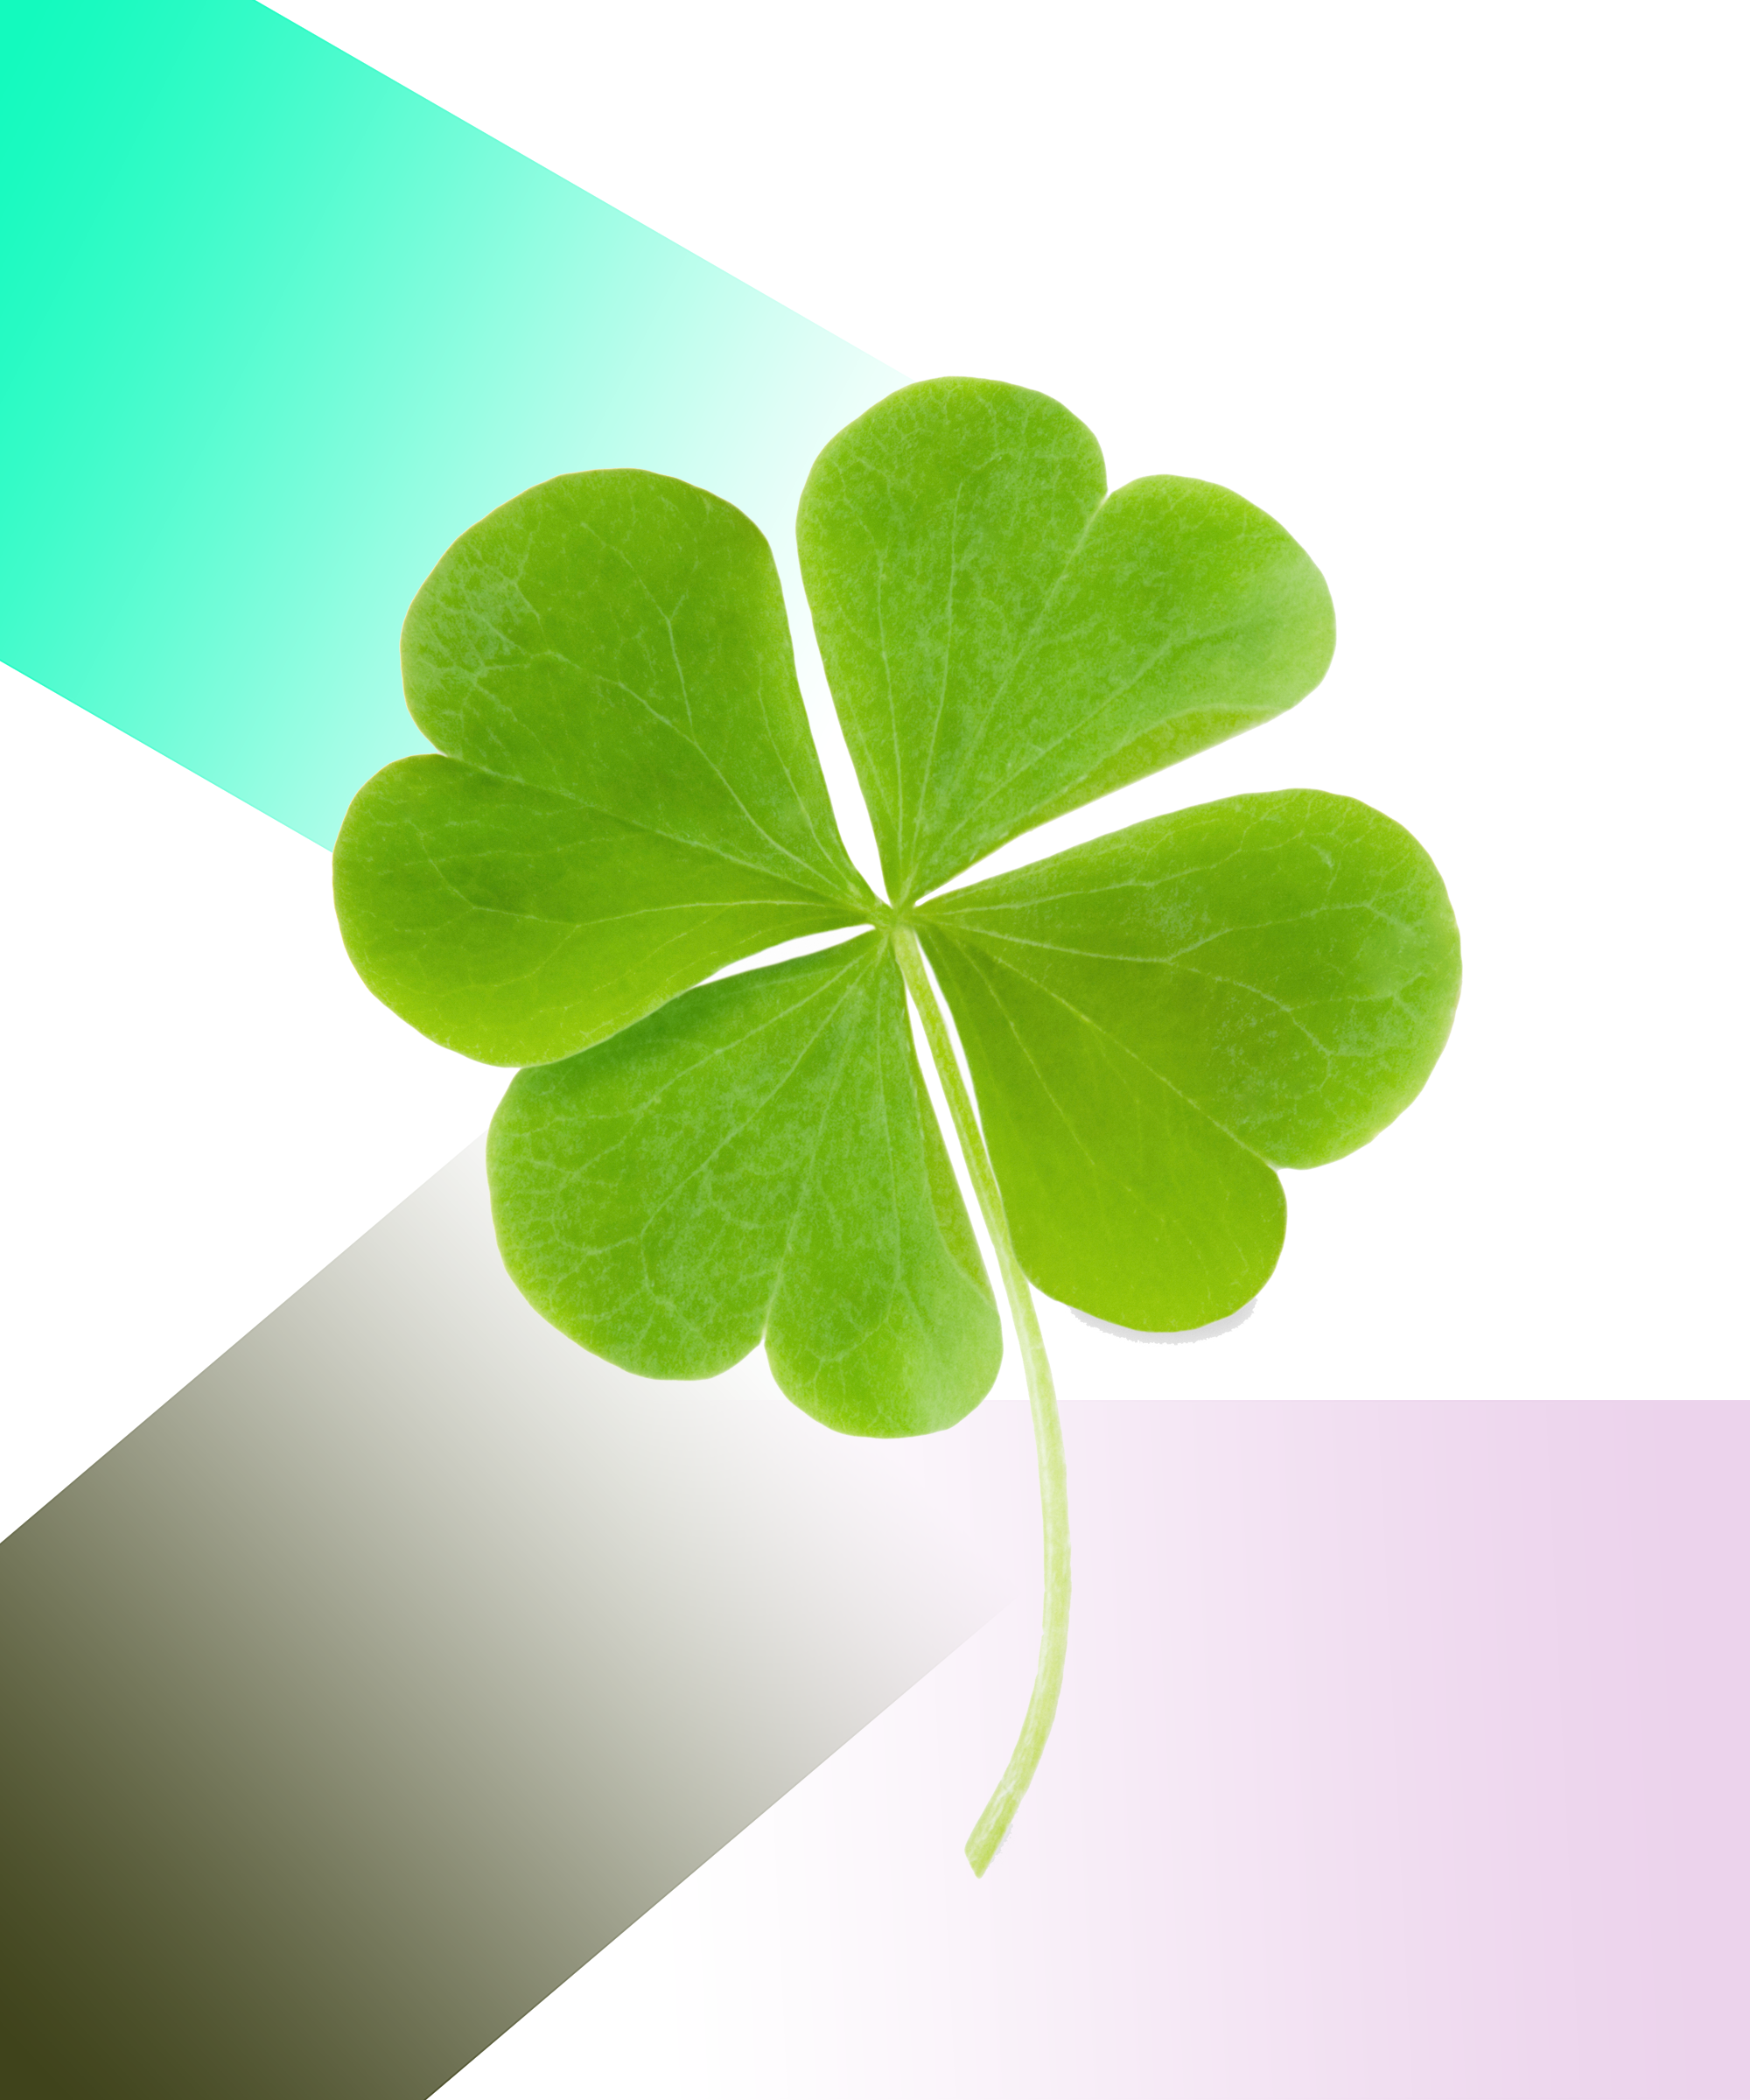 Four leaf clover folklore meaning st patrick day 2018 biocorpaavc Gallery